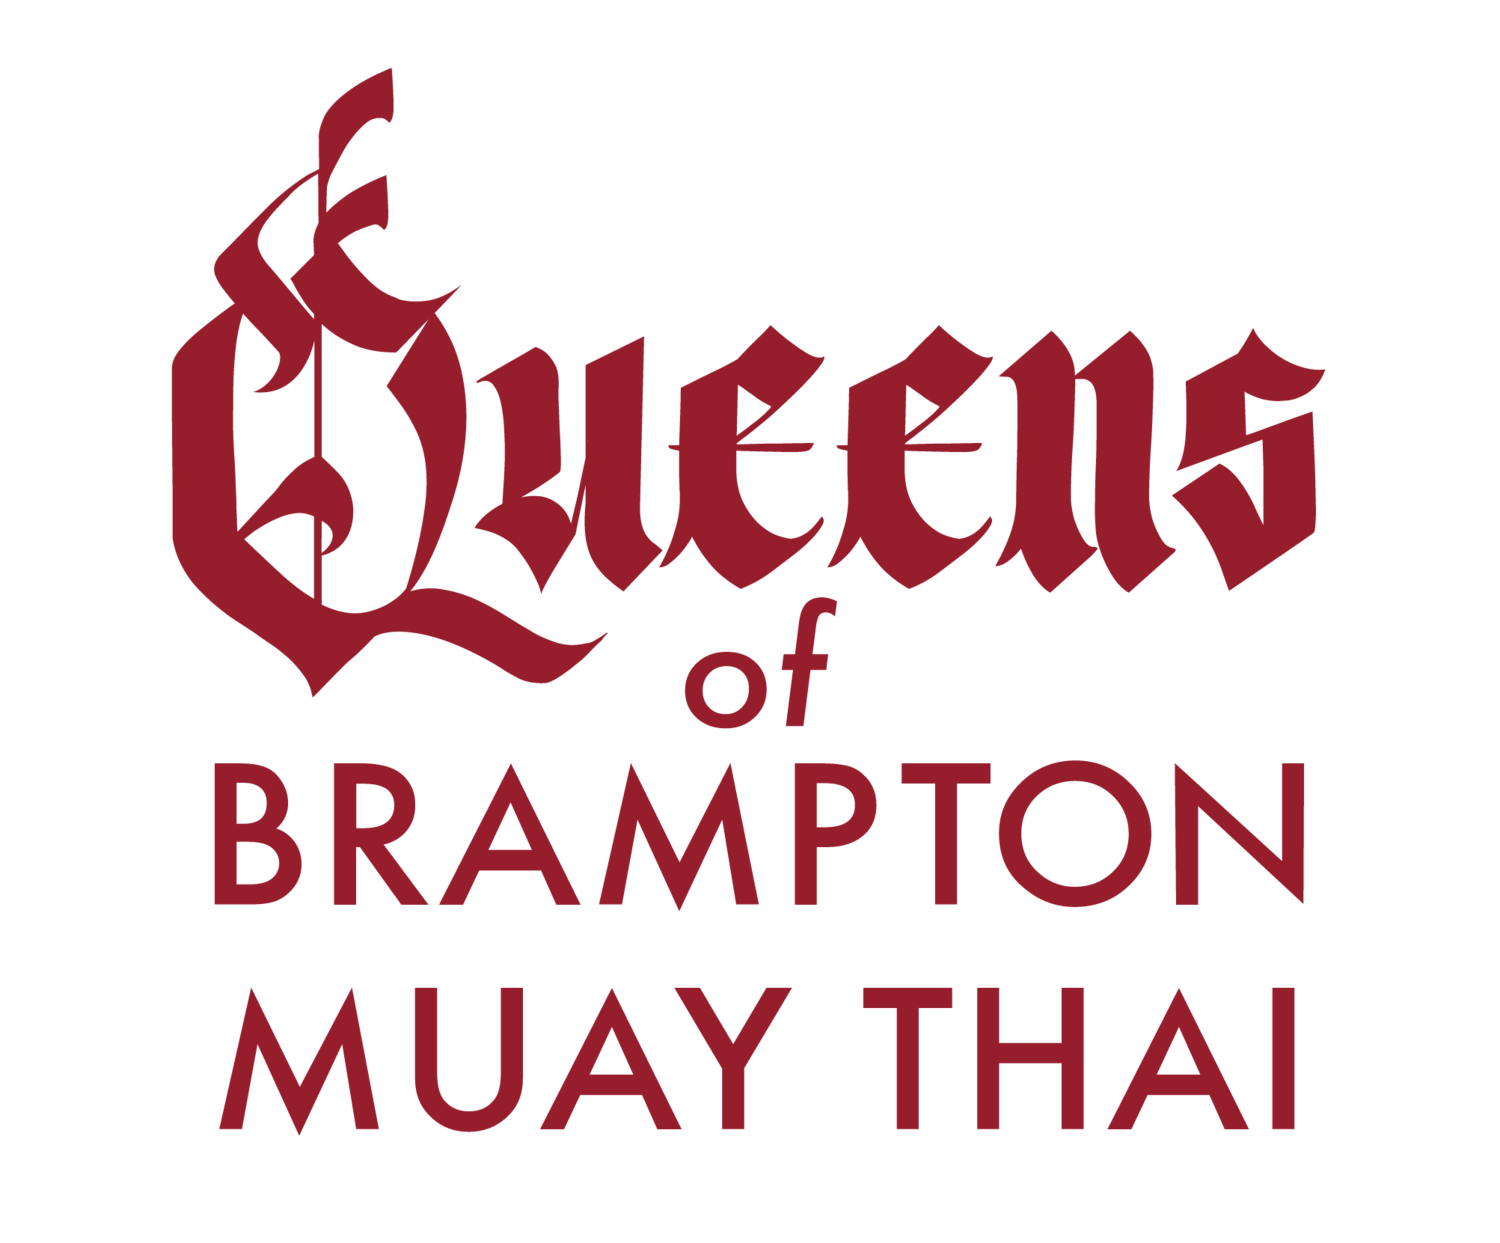 Queens of Brampton Muay Thai